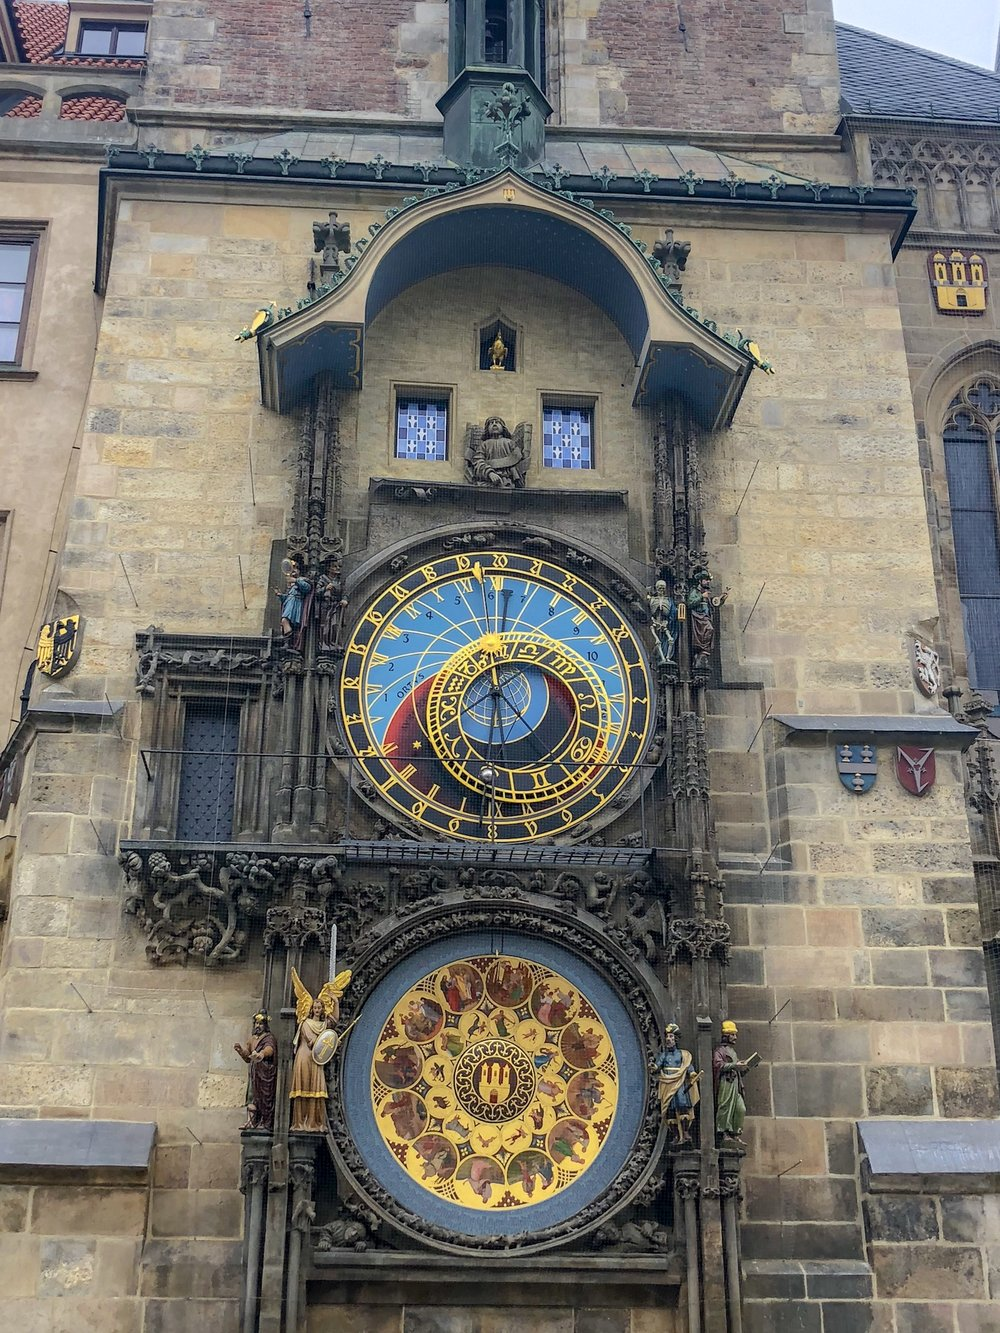 Astronomical clock, Old Square